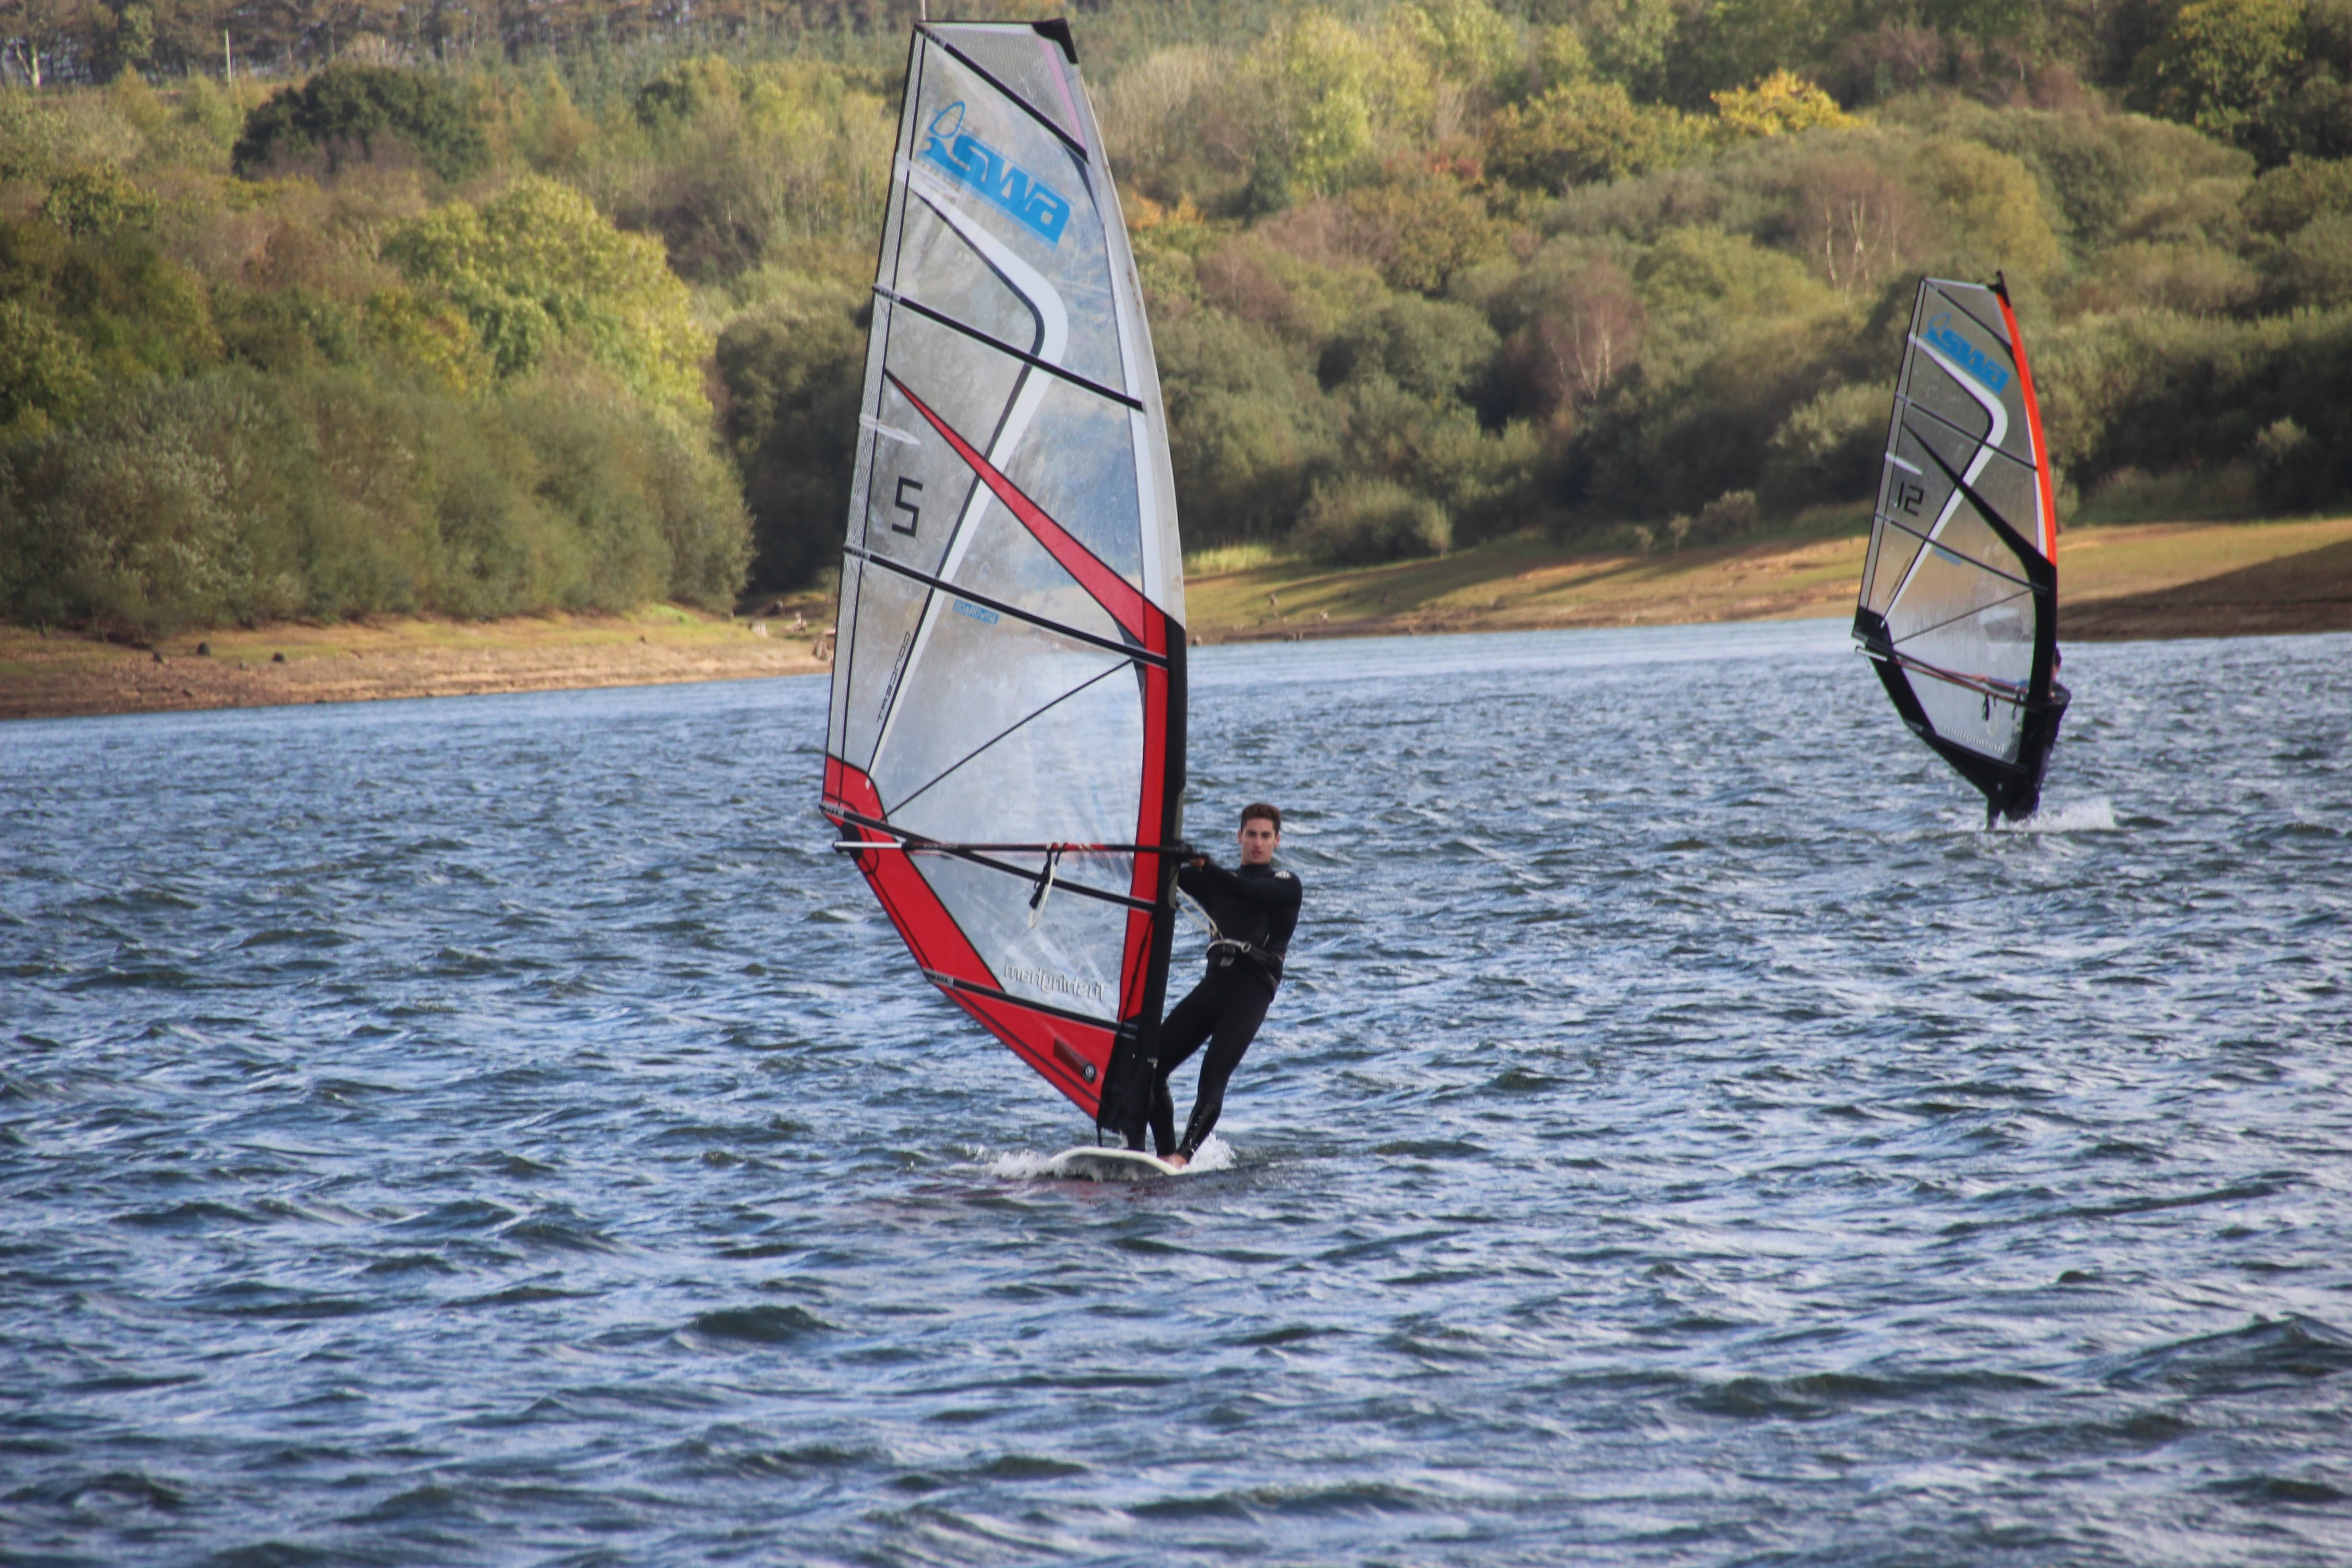 Windsurfers at AK last year